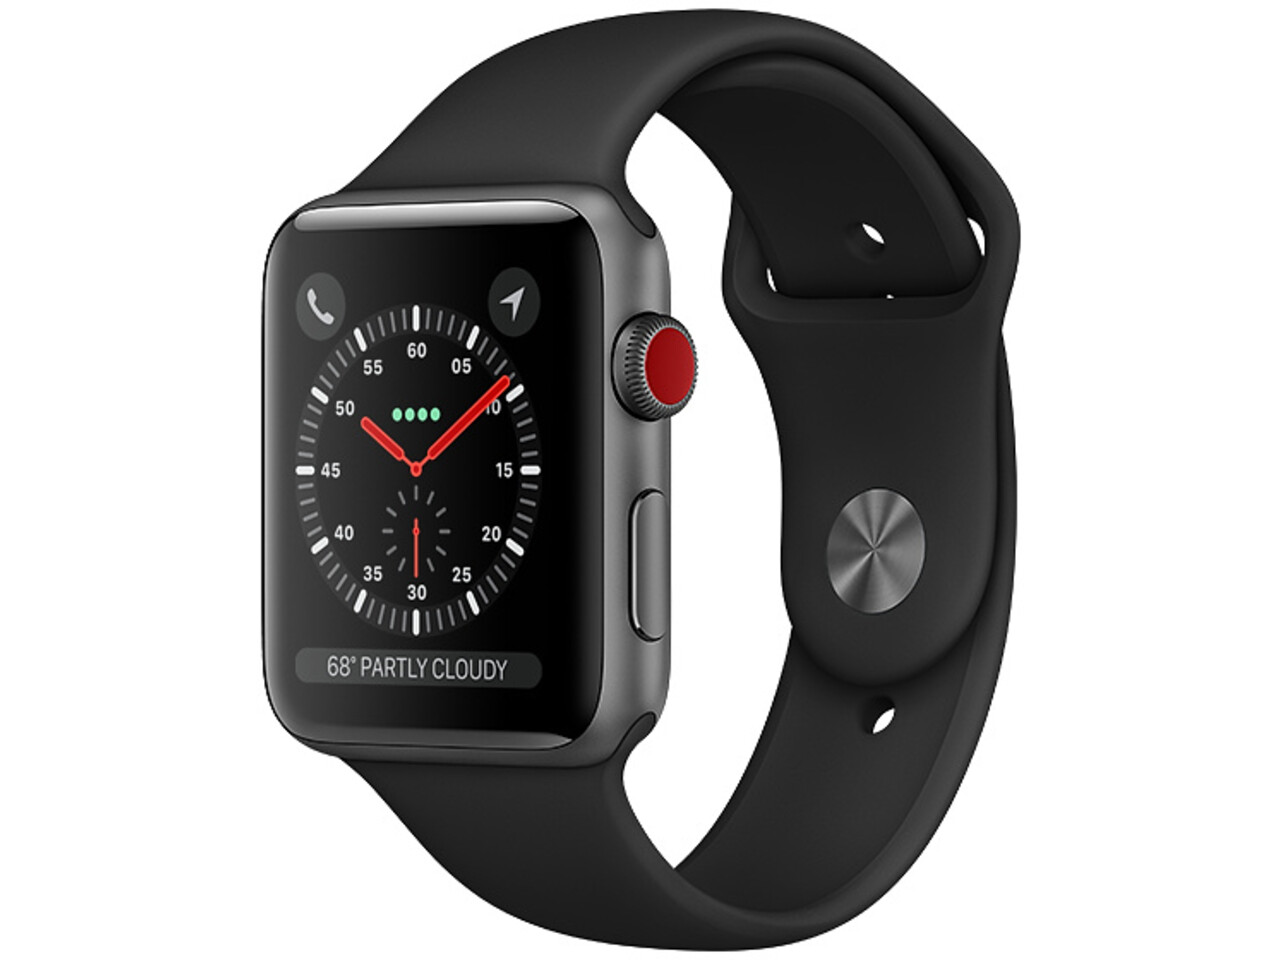 apple watch series 3 cellular 38mm space gray aluminum black sport band